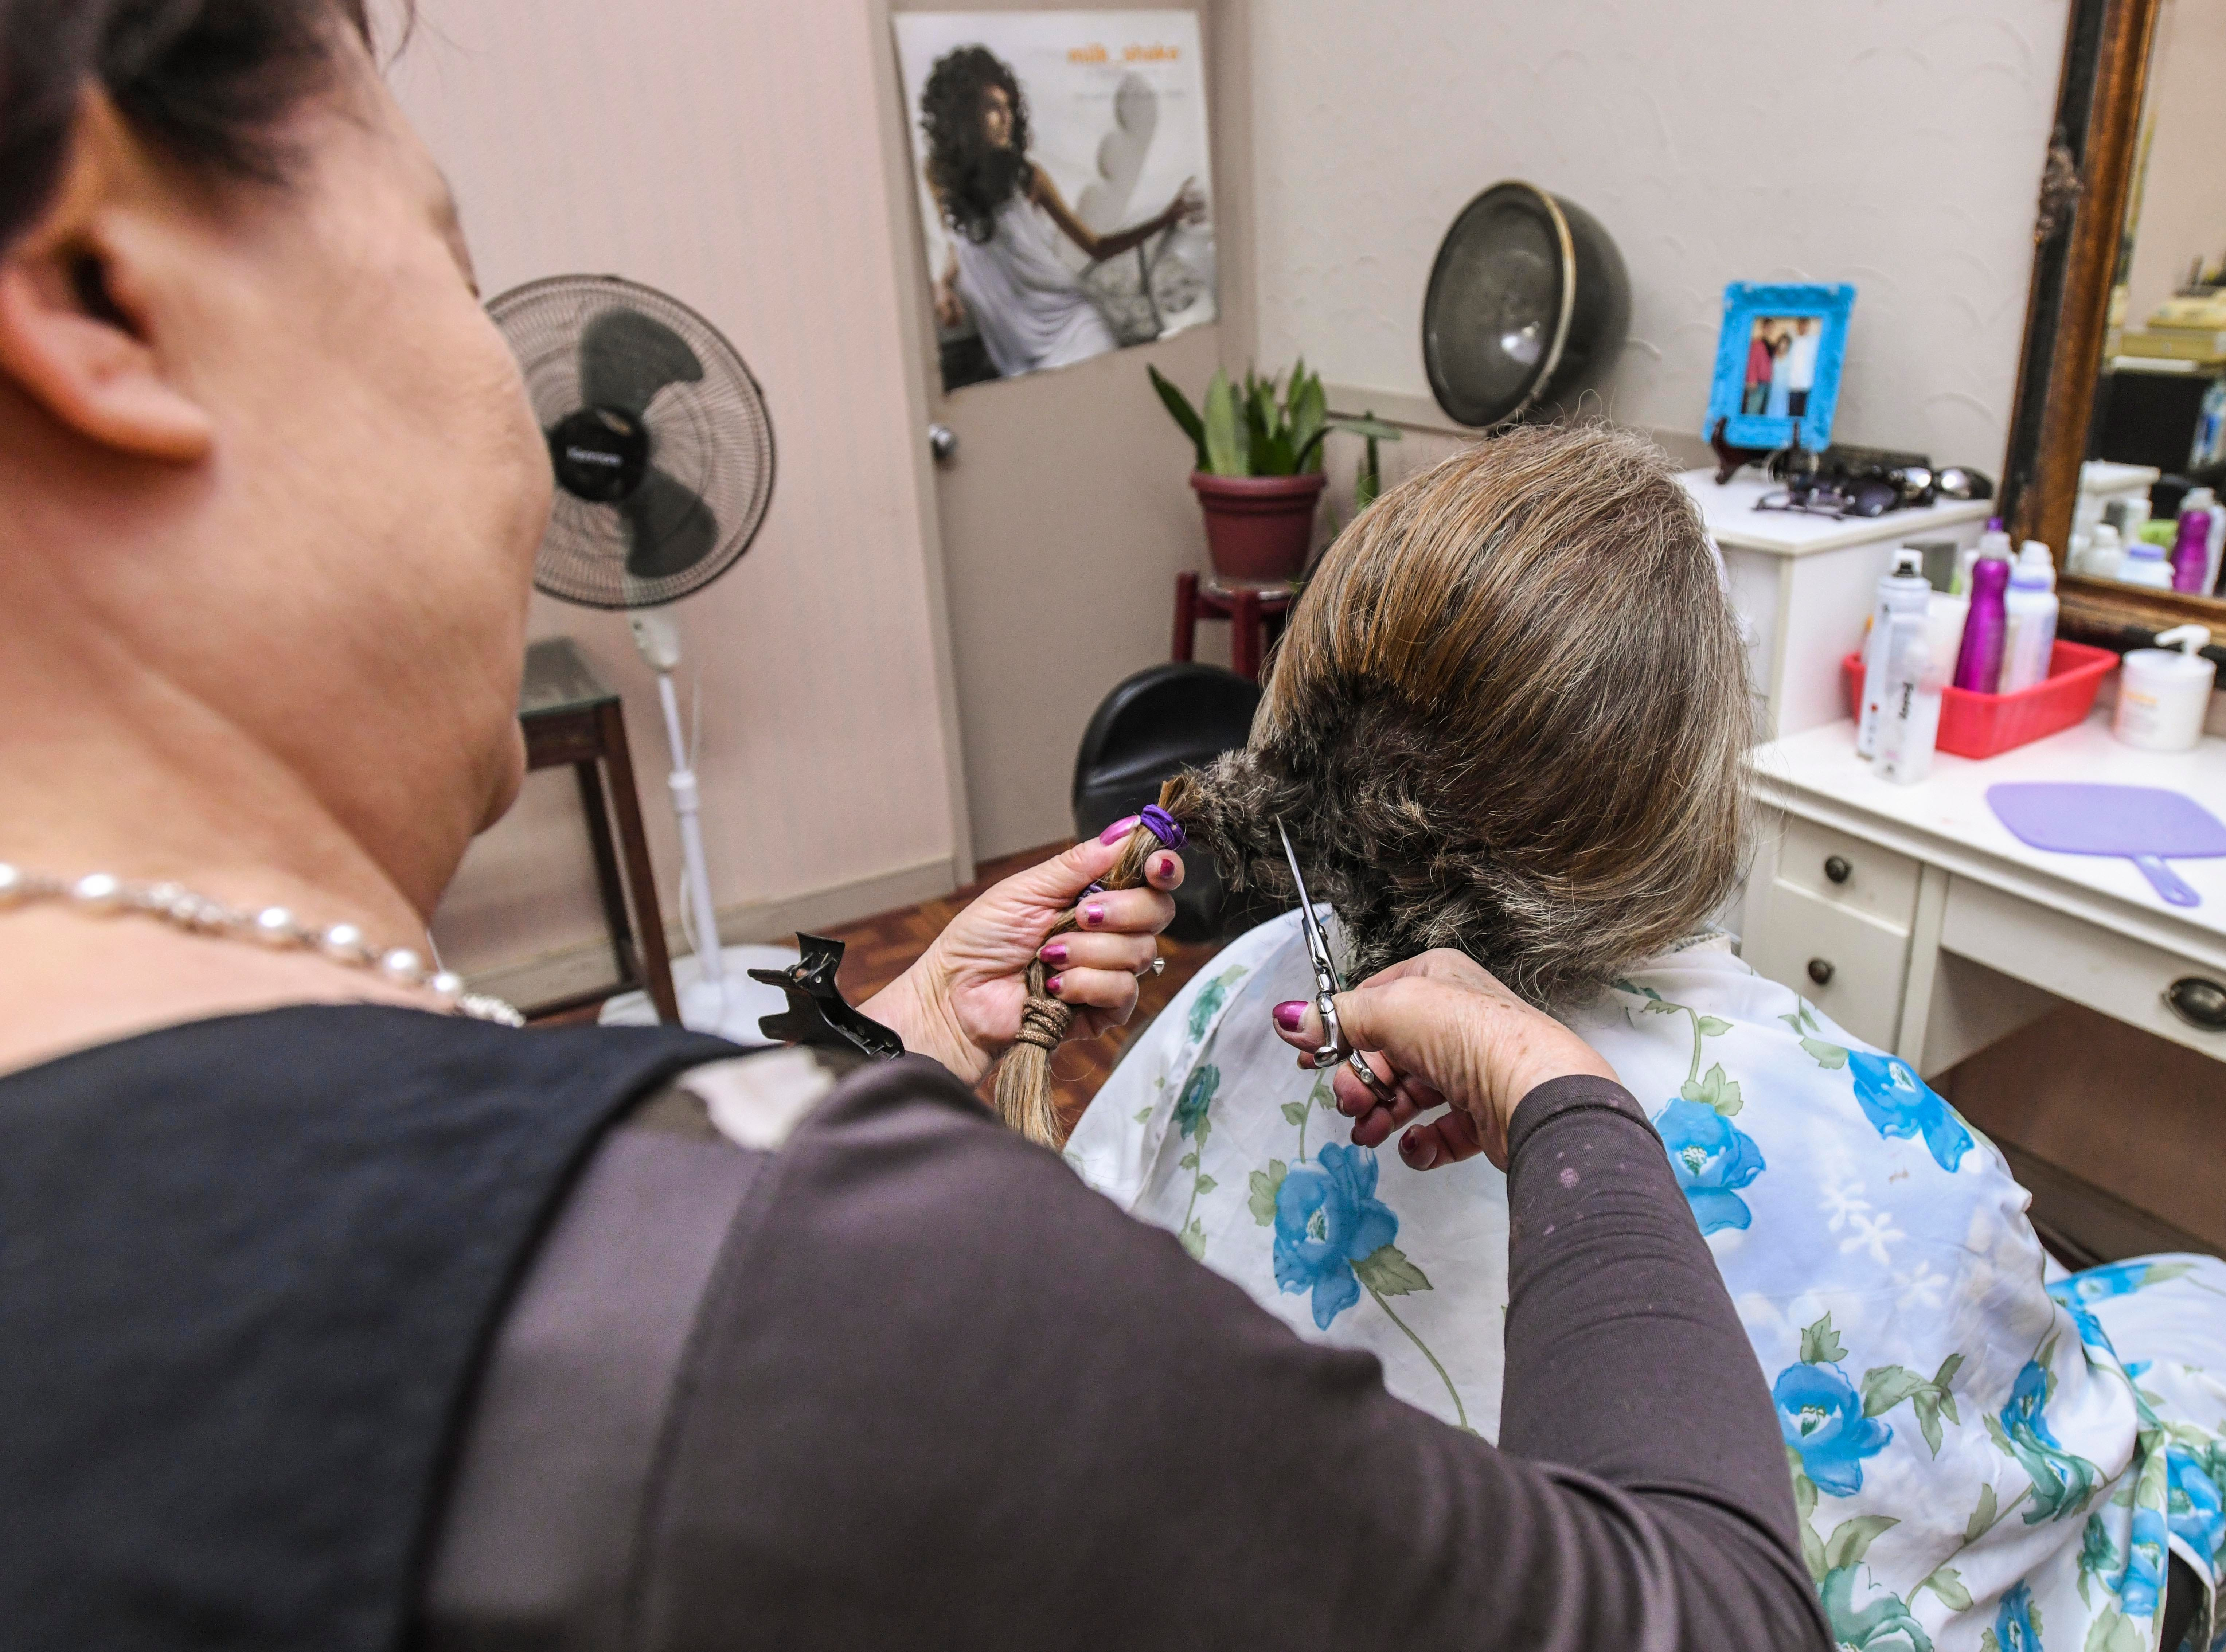 Suzzi Jung, standing, cuts a long length of hair from Shepherd DeBenedictis at the Grace Beauty Shop in Tamuning on Wednesday, Feb. 6, 2019. DeBenedictis, and his daughter, Raylene DeBenedictis, 12, both had their hair cut, with the intention to donate their locks to Wigs for Kids and 360 Hair Inc., respectively, to be fabricated into wigs for people suffering from medical hair loss.